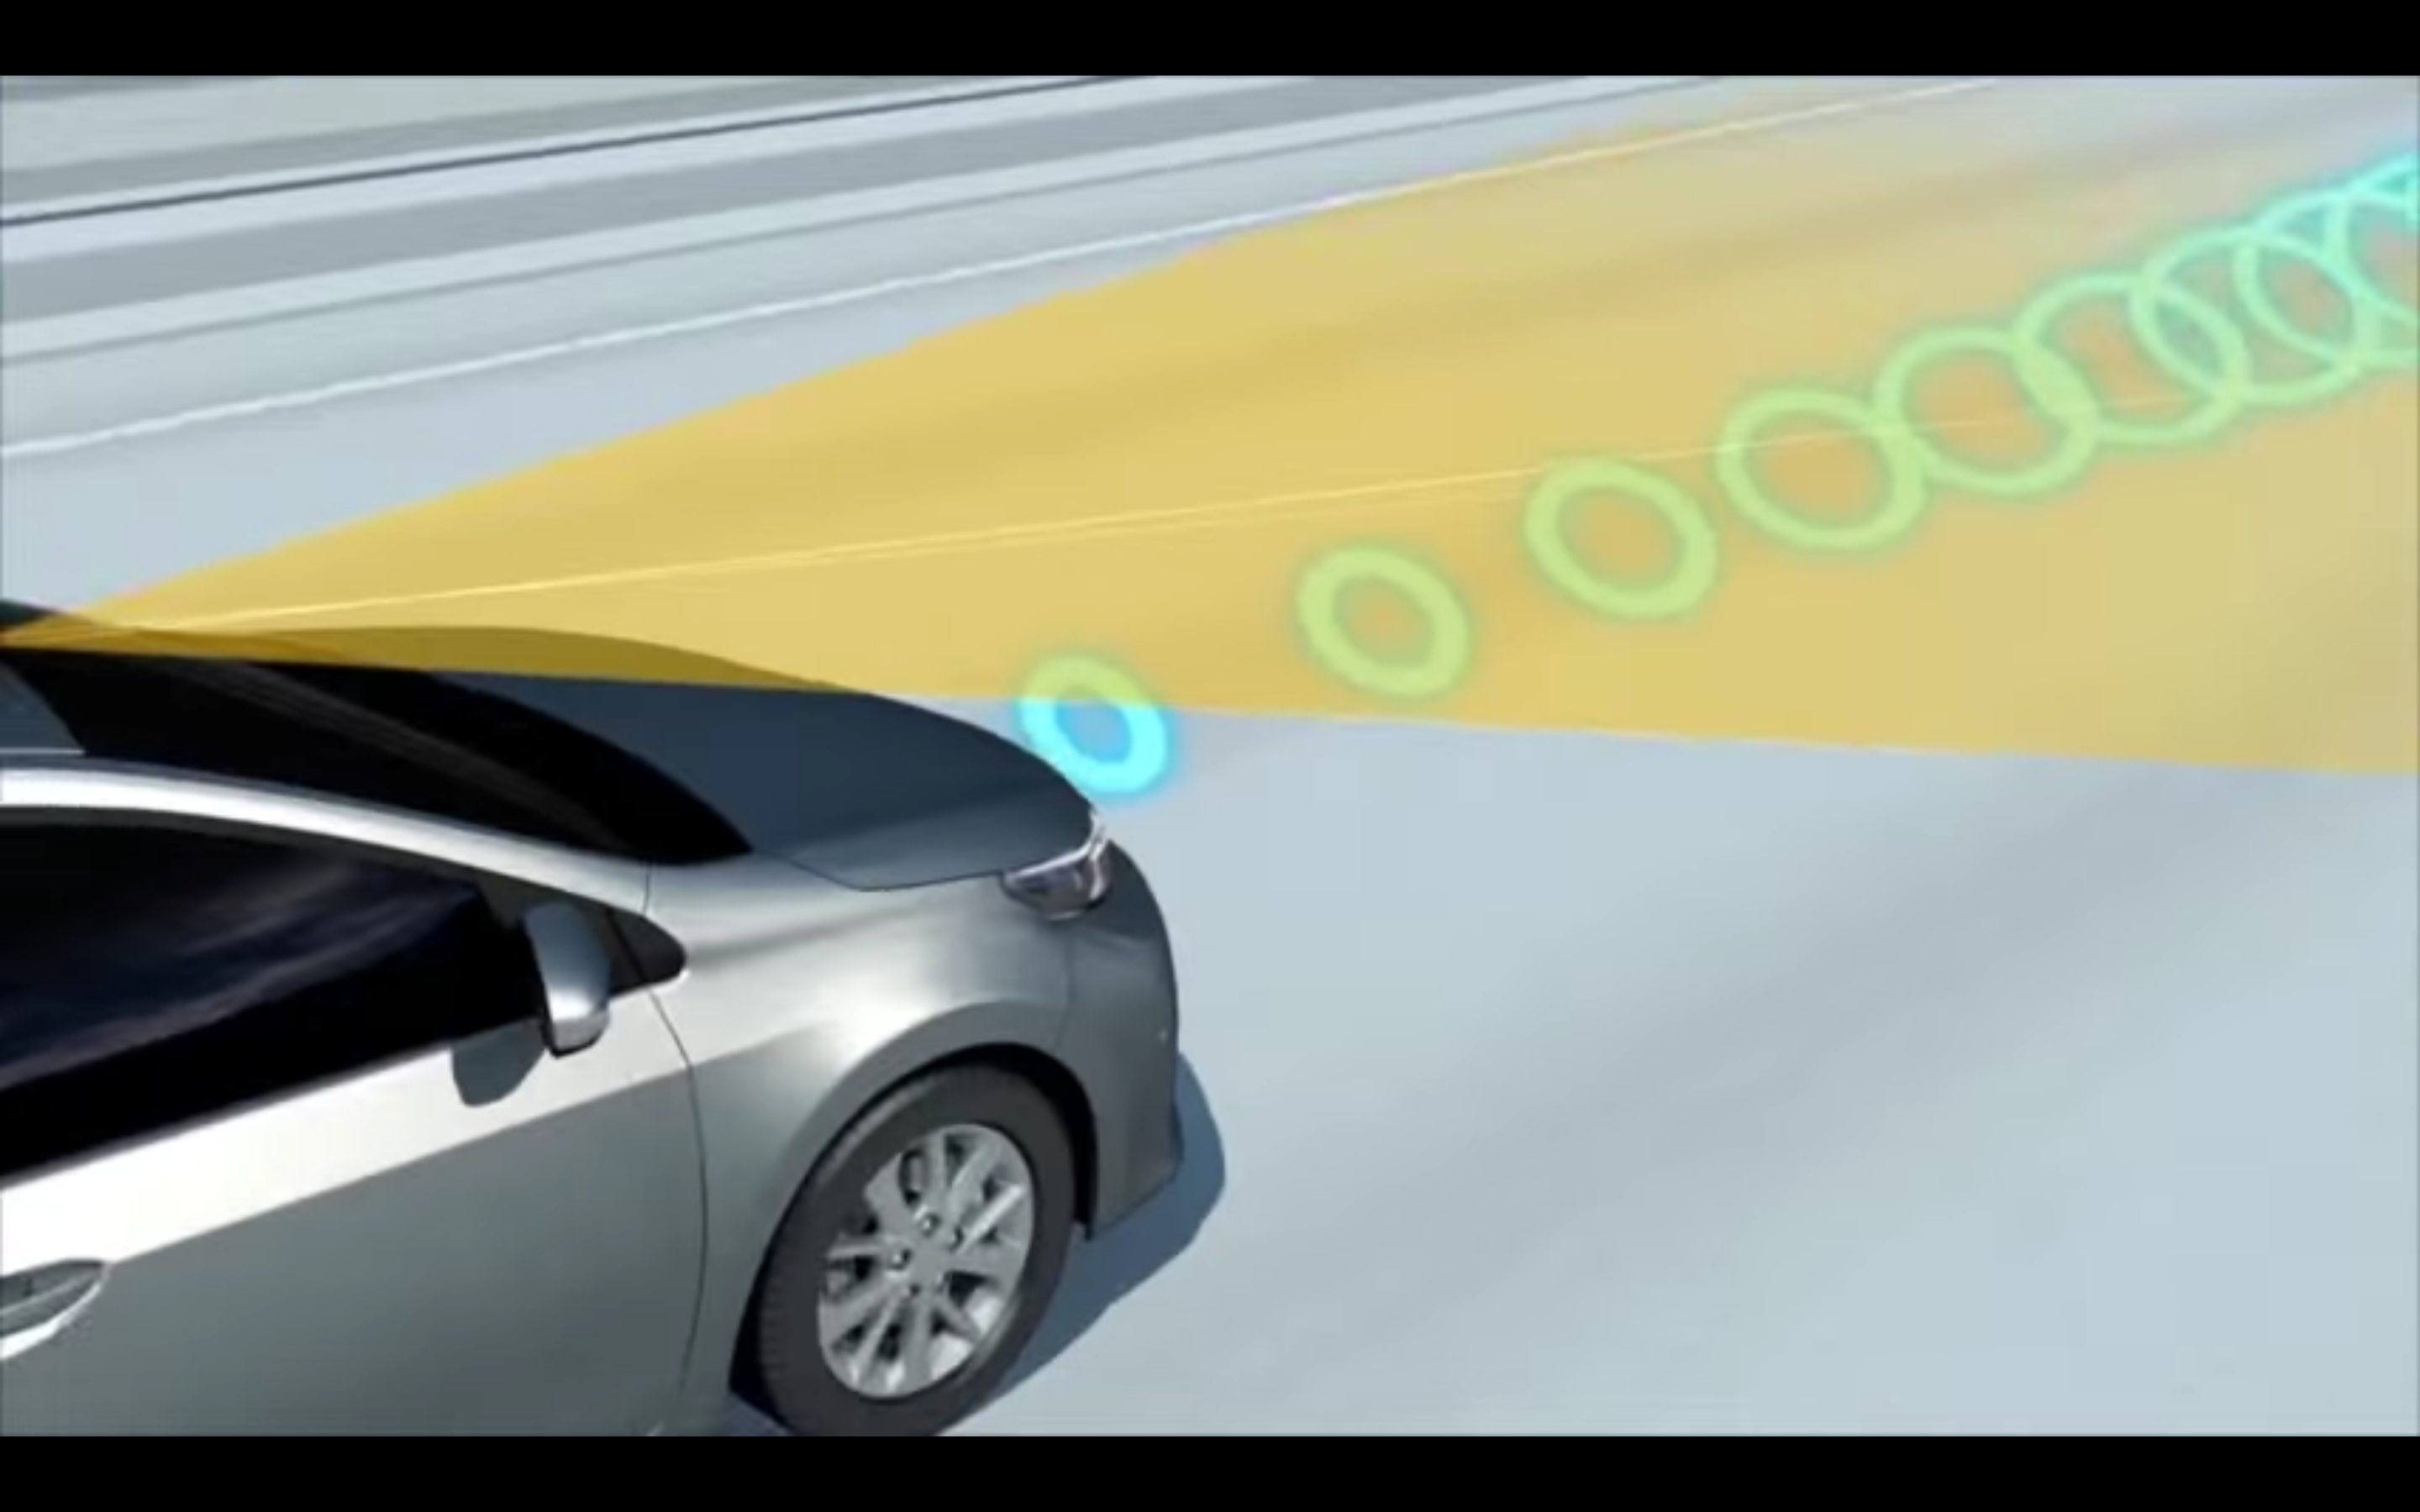 No, your car won't actually emit yellow beams and blue rings. But you get the idea.